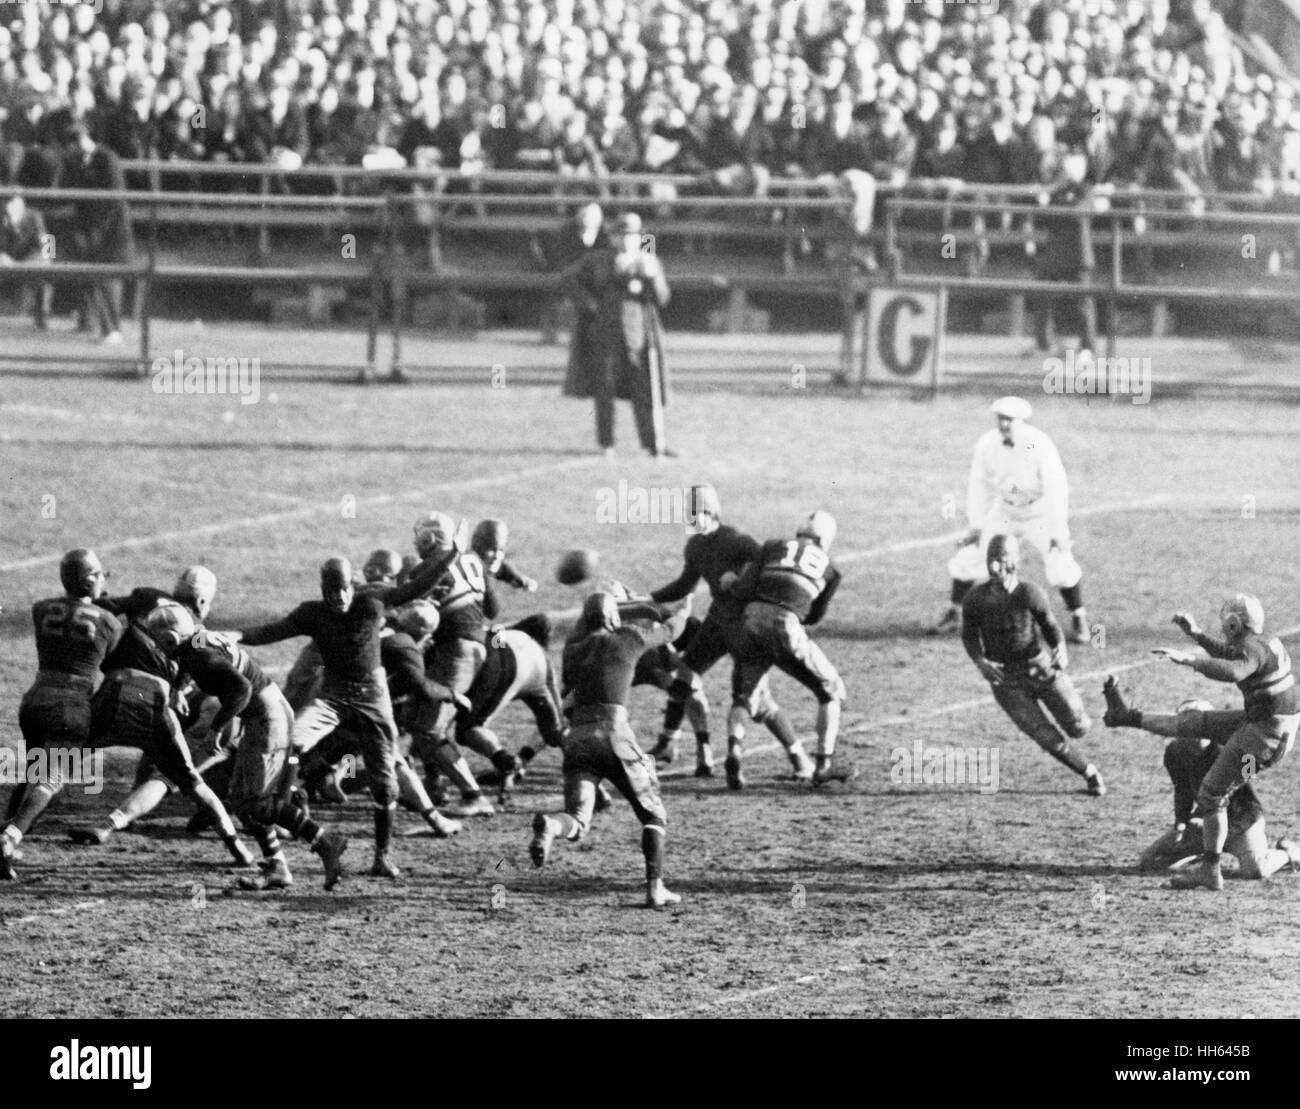 American football match between Army and Navy teams at the Yankee Stadium, New York City, USA, 12 December 1931. Stock Photo